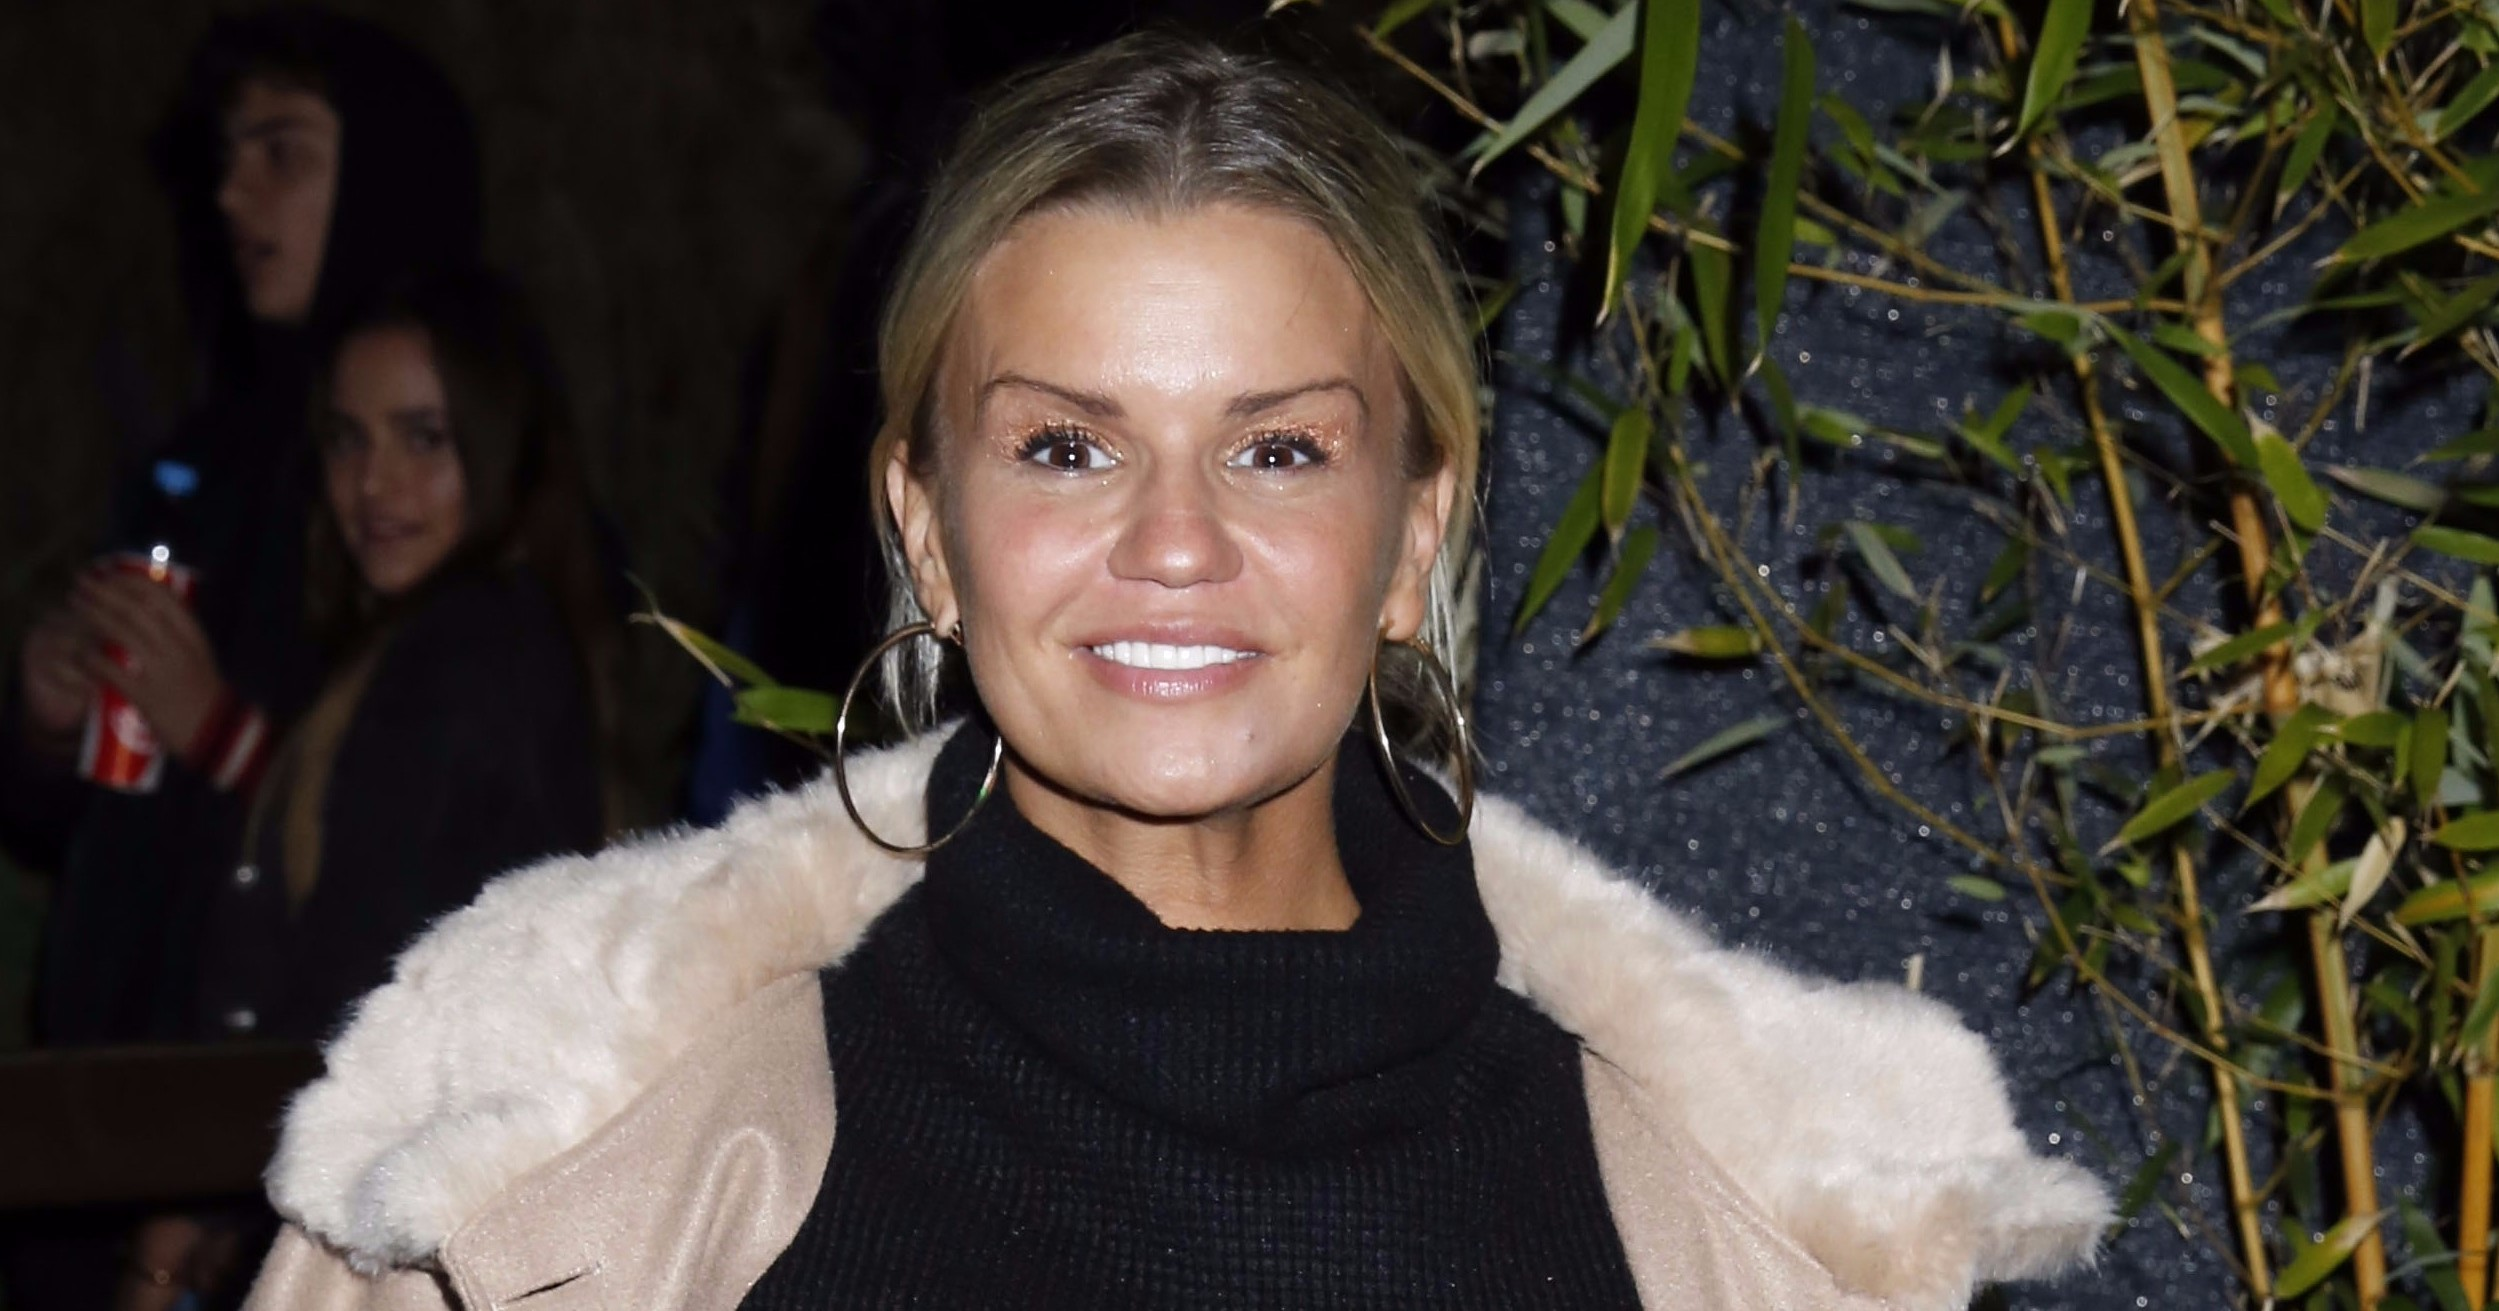 Kerry Katona fears for friend Katie Price after her ex Kieran Hayler 'gets engaged'